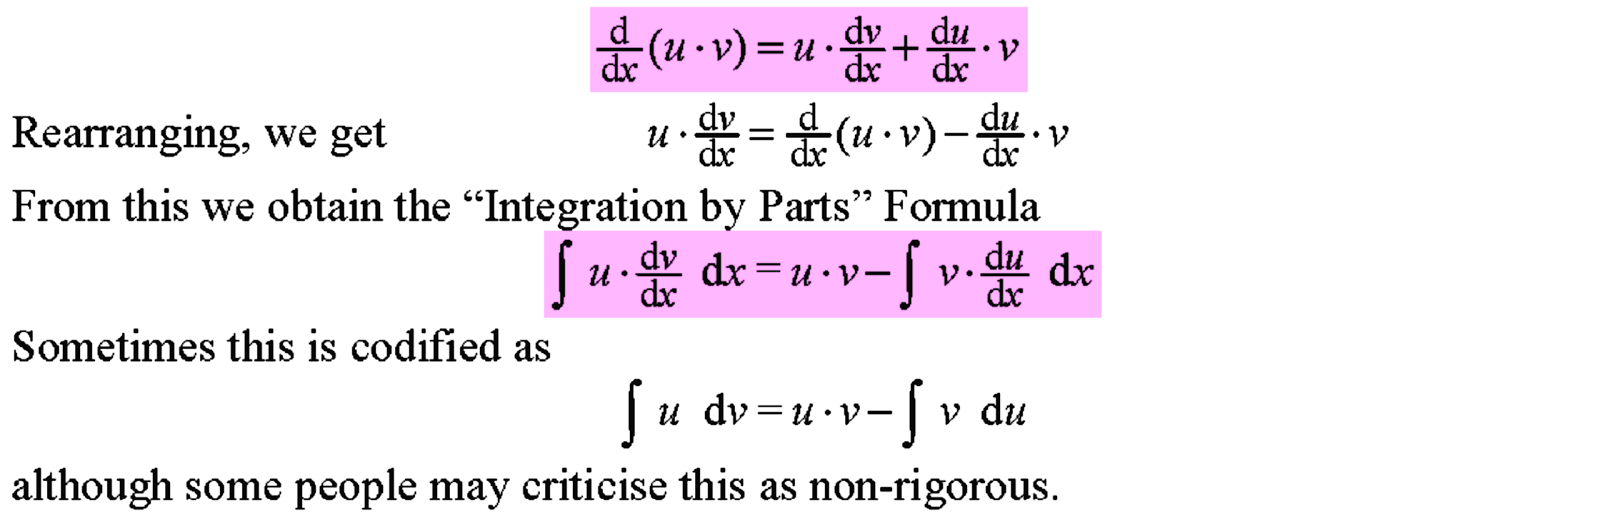 However integration by parts is similar to and can be obtained from the differentiation product rule